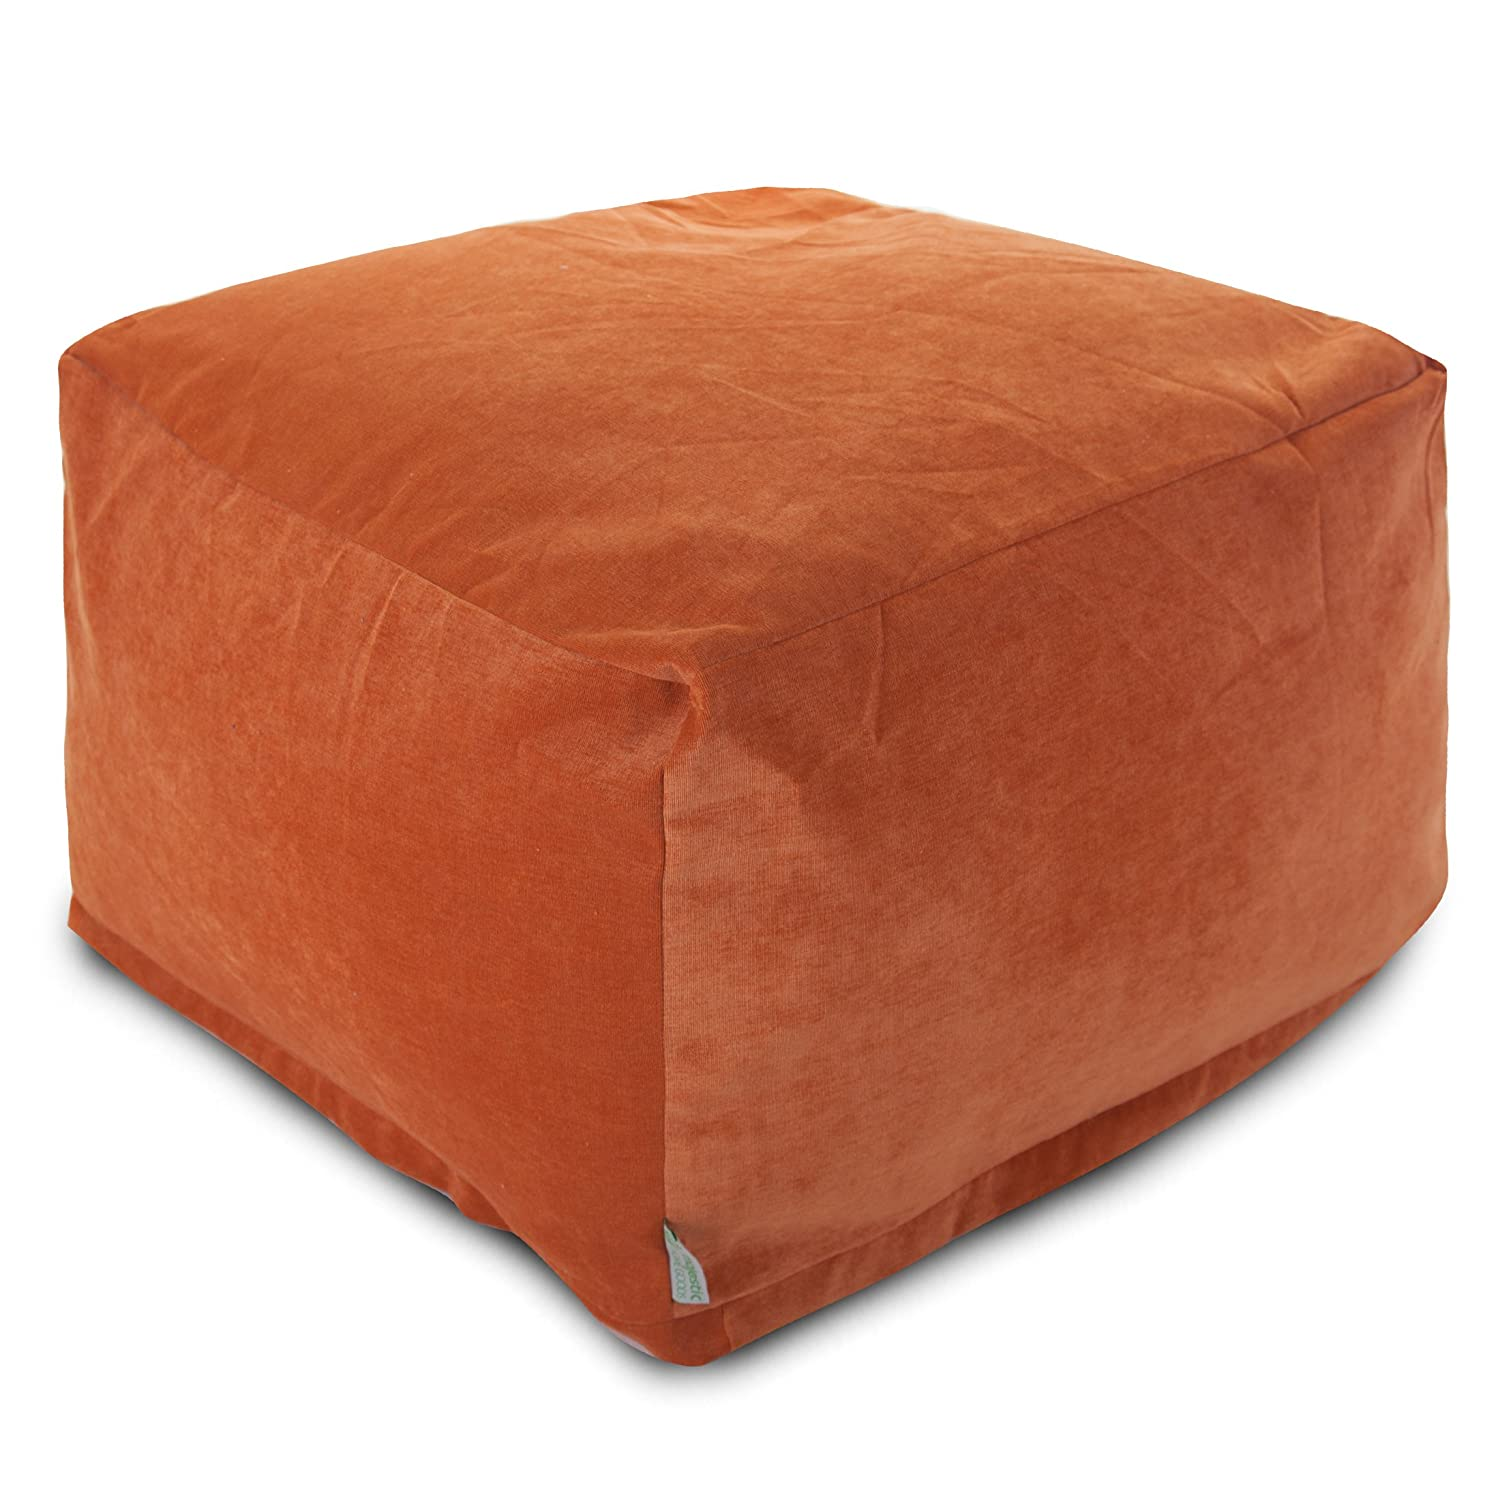 amazoncom majestic home goods villa orange large ottoman  - amazoncom majestic home goods villa orange large ottoman kitchen  dining